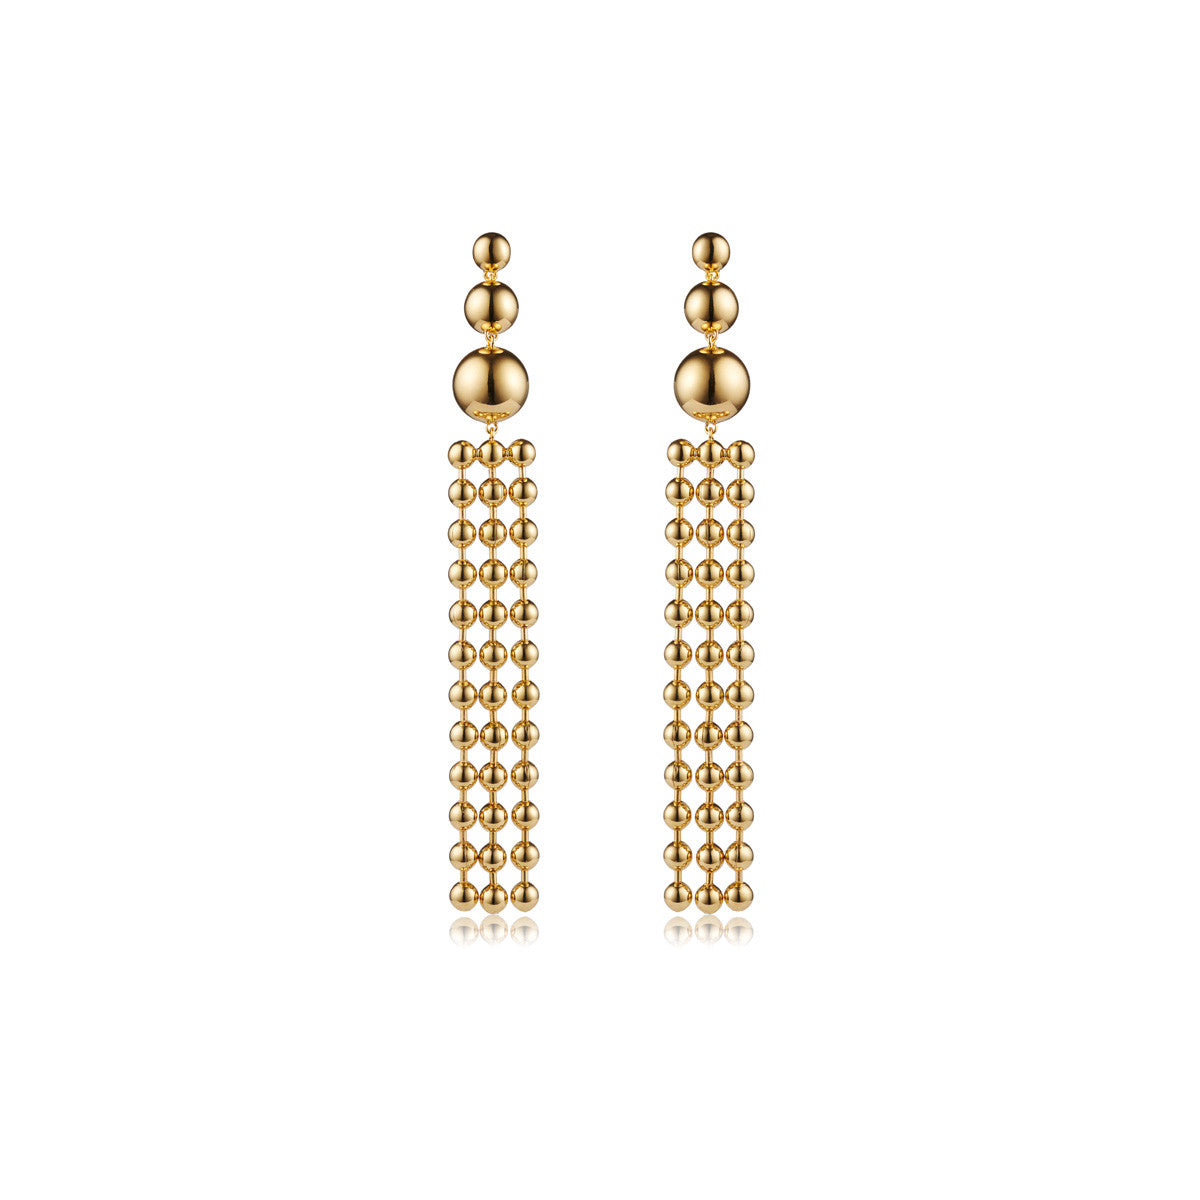 Solid brass, 18K gold plated Ad Astra drop earrings - front